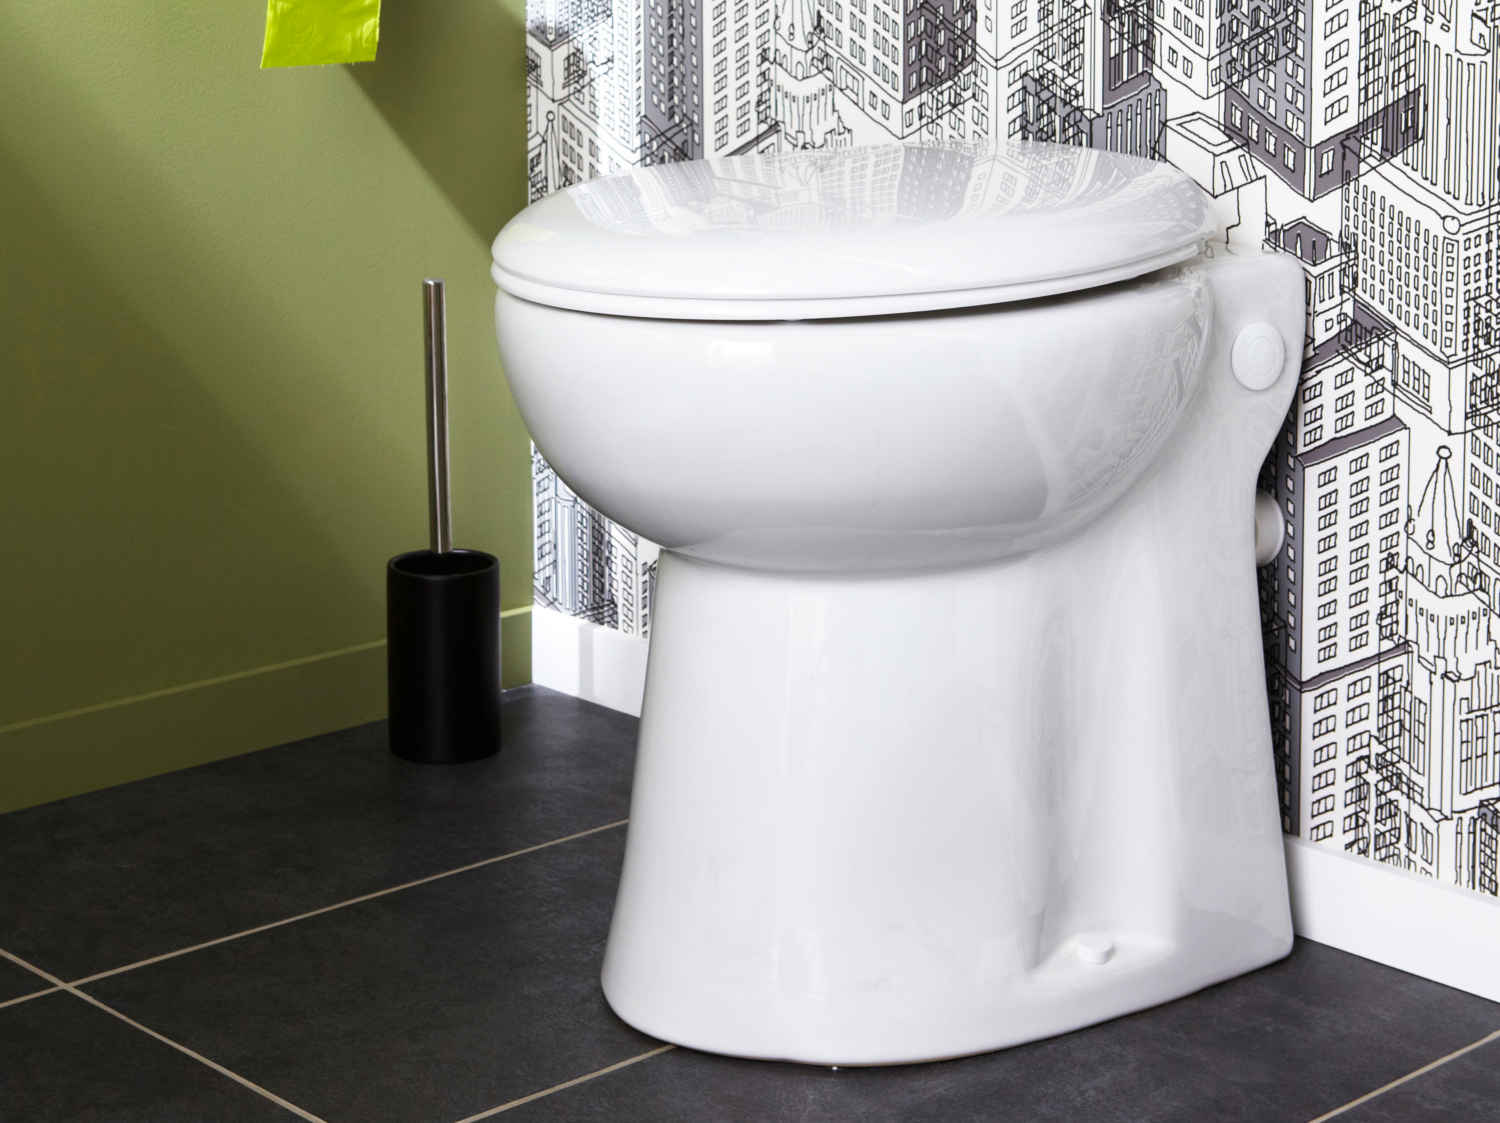 Wc abattant et lave mains leroy merlin - Comment installer un wc broyeur ...